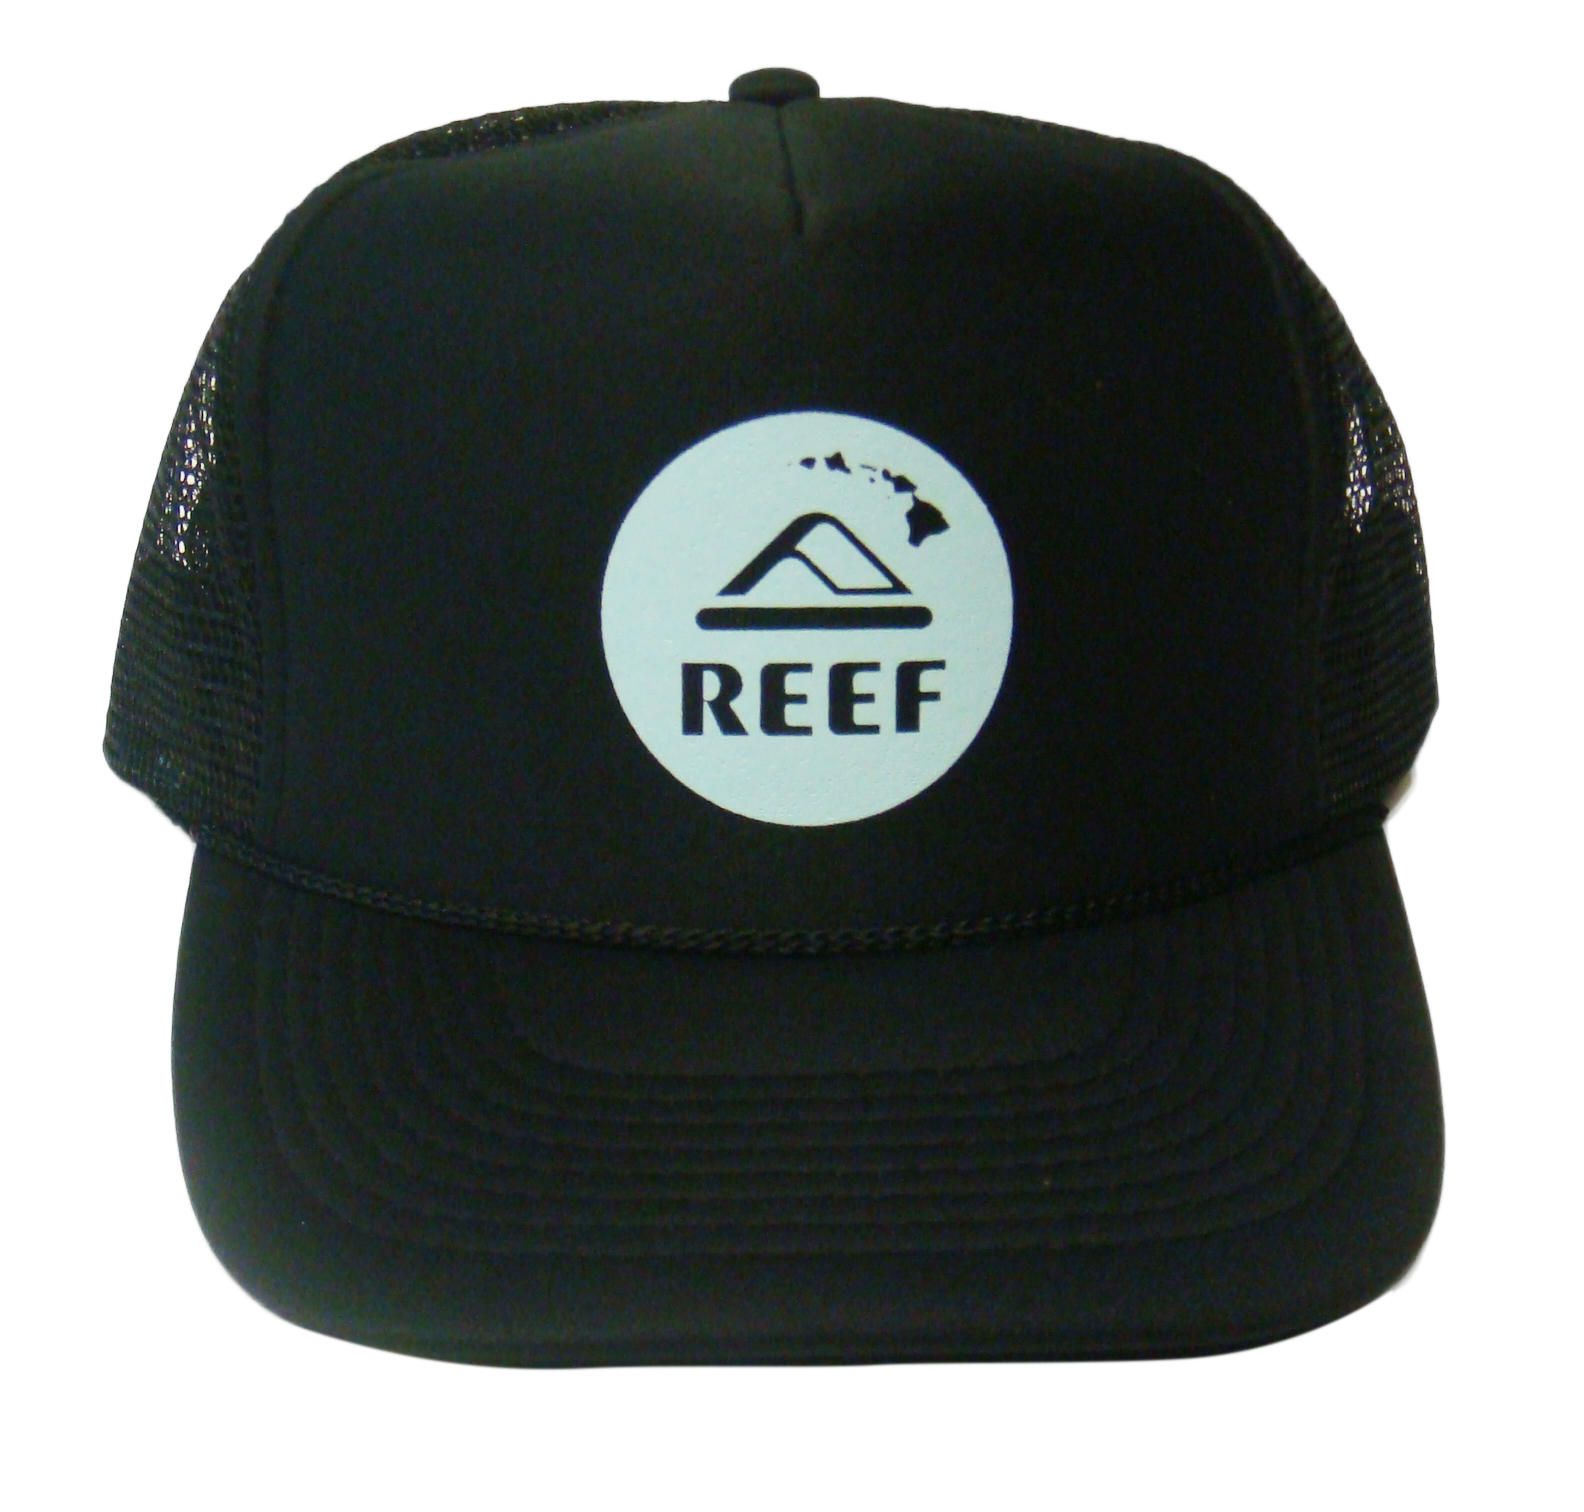 Reef Promotion at T&C Surf